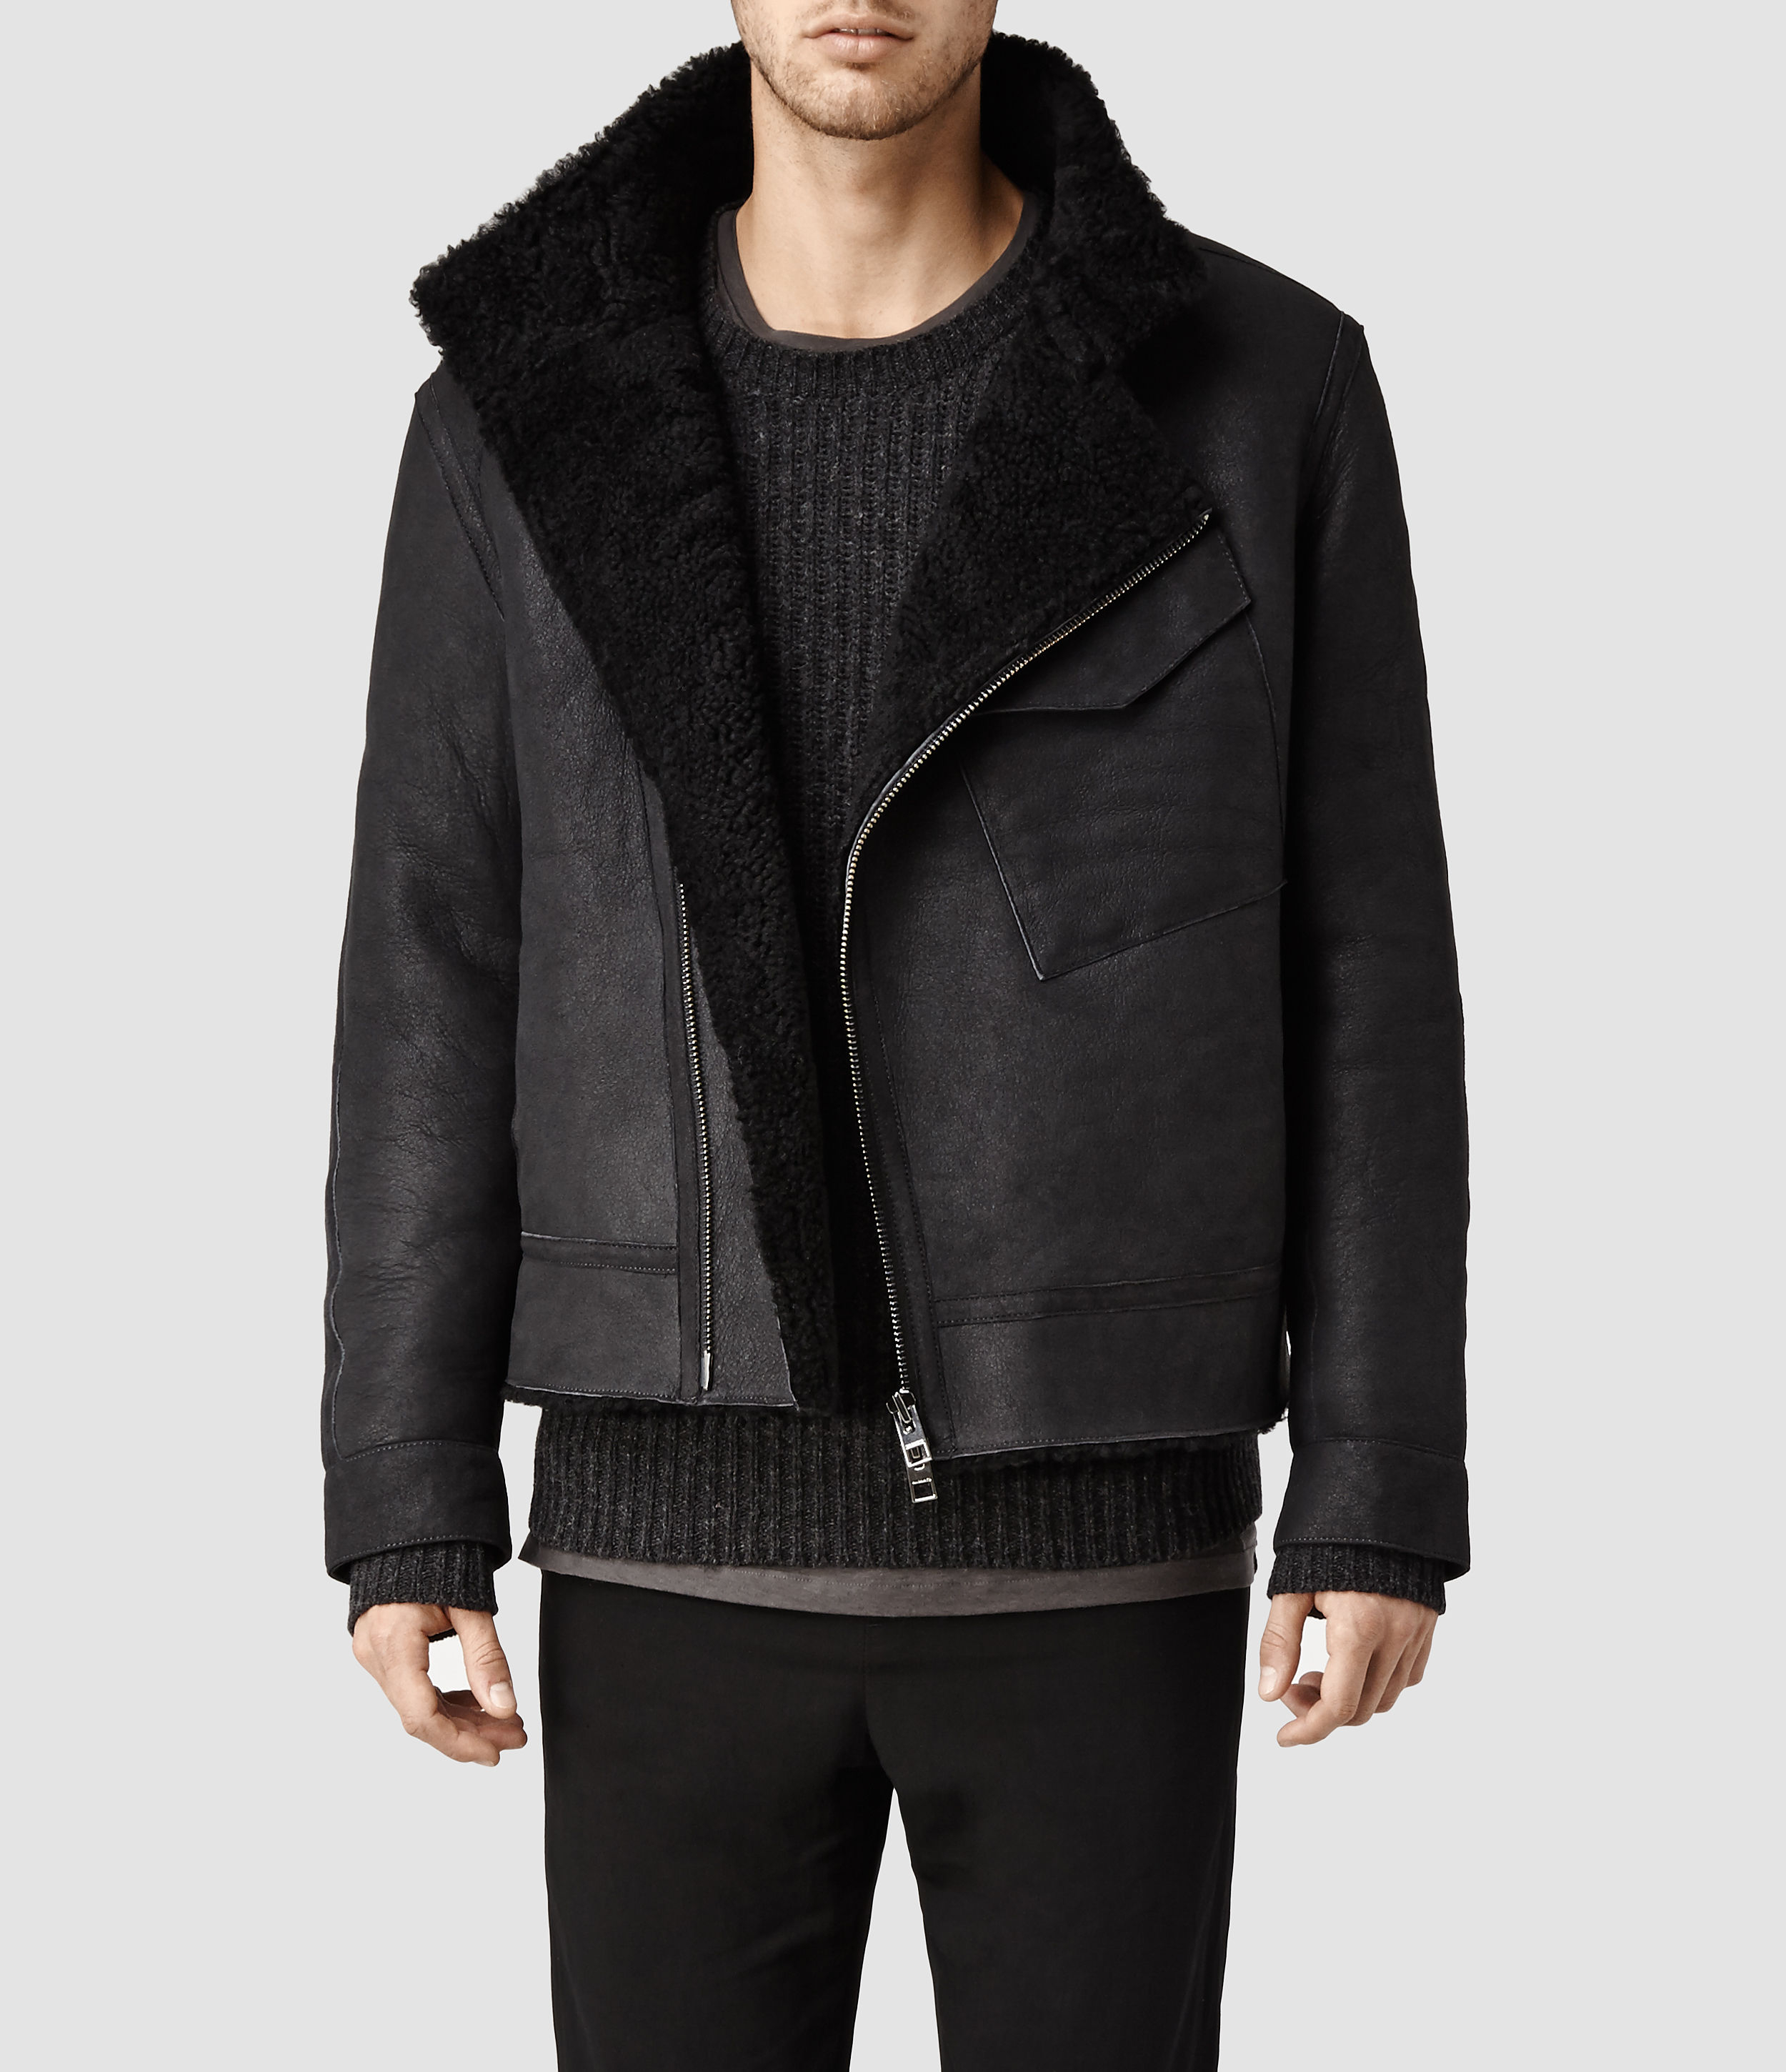 Allsaints Drayford Shearling Leather Jacket In Gray For